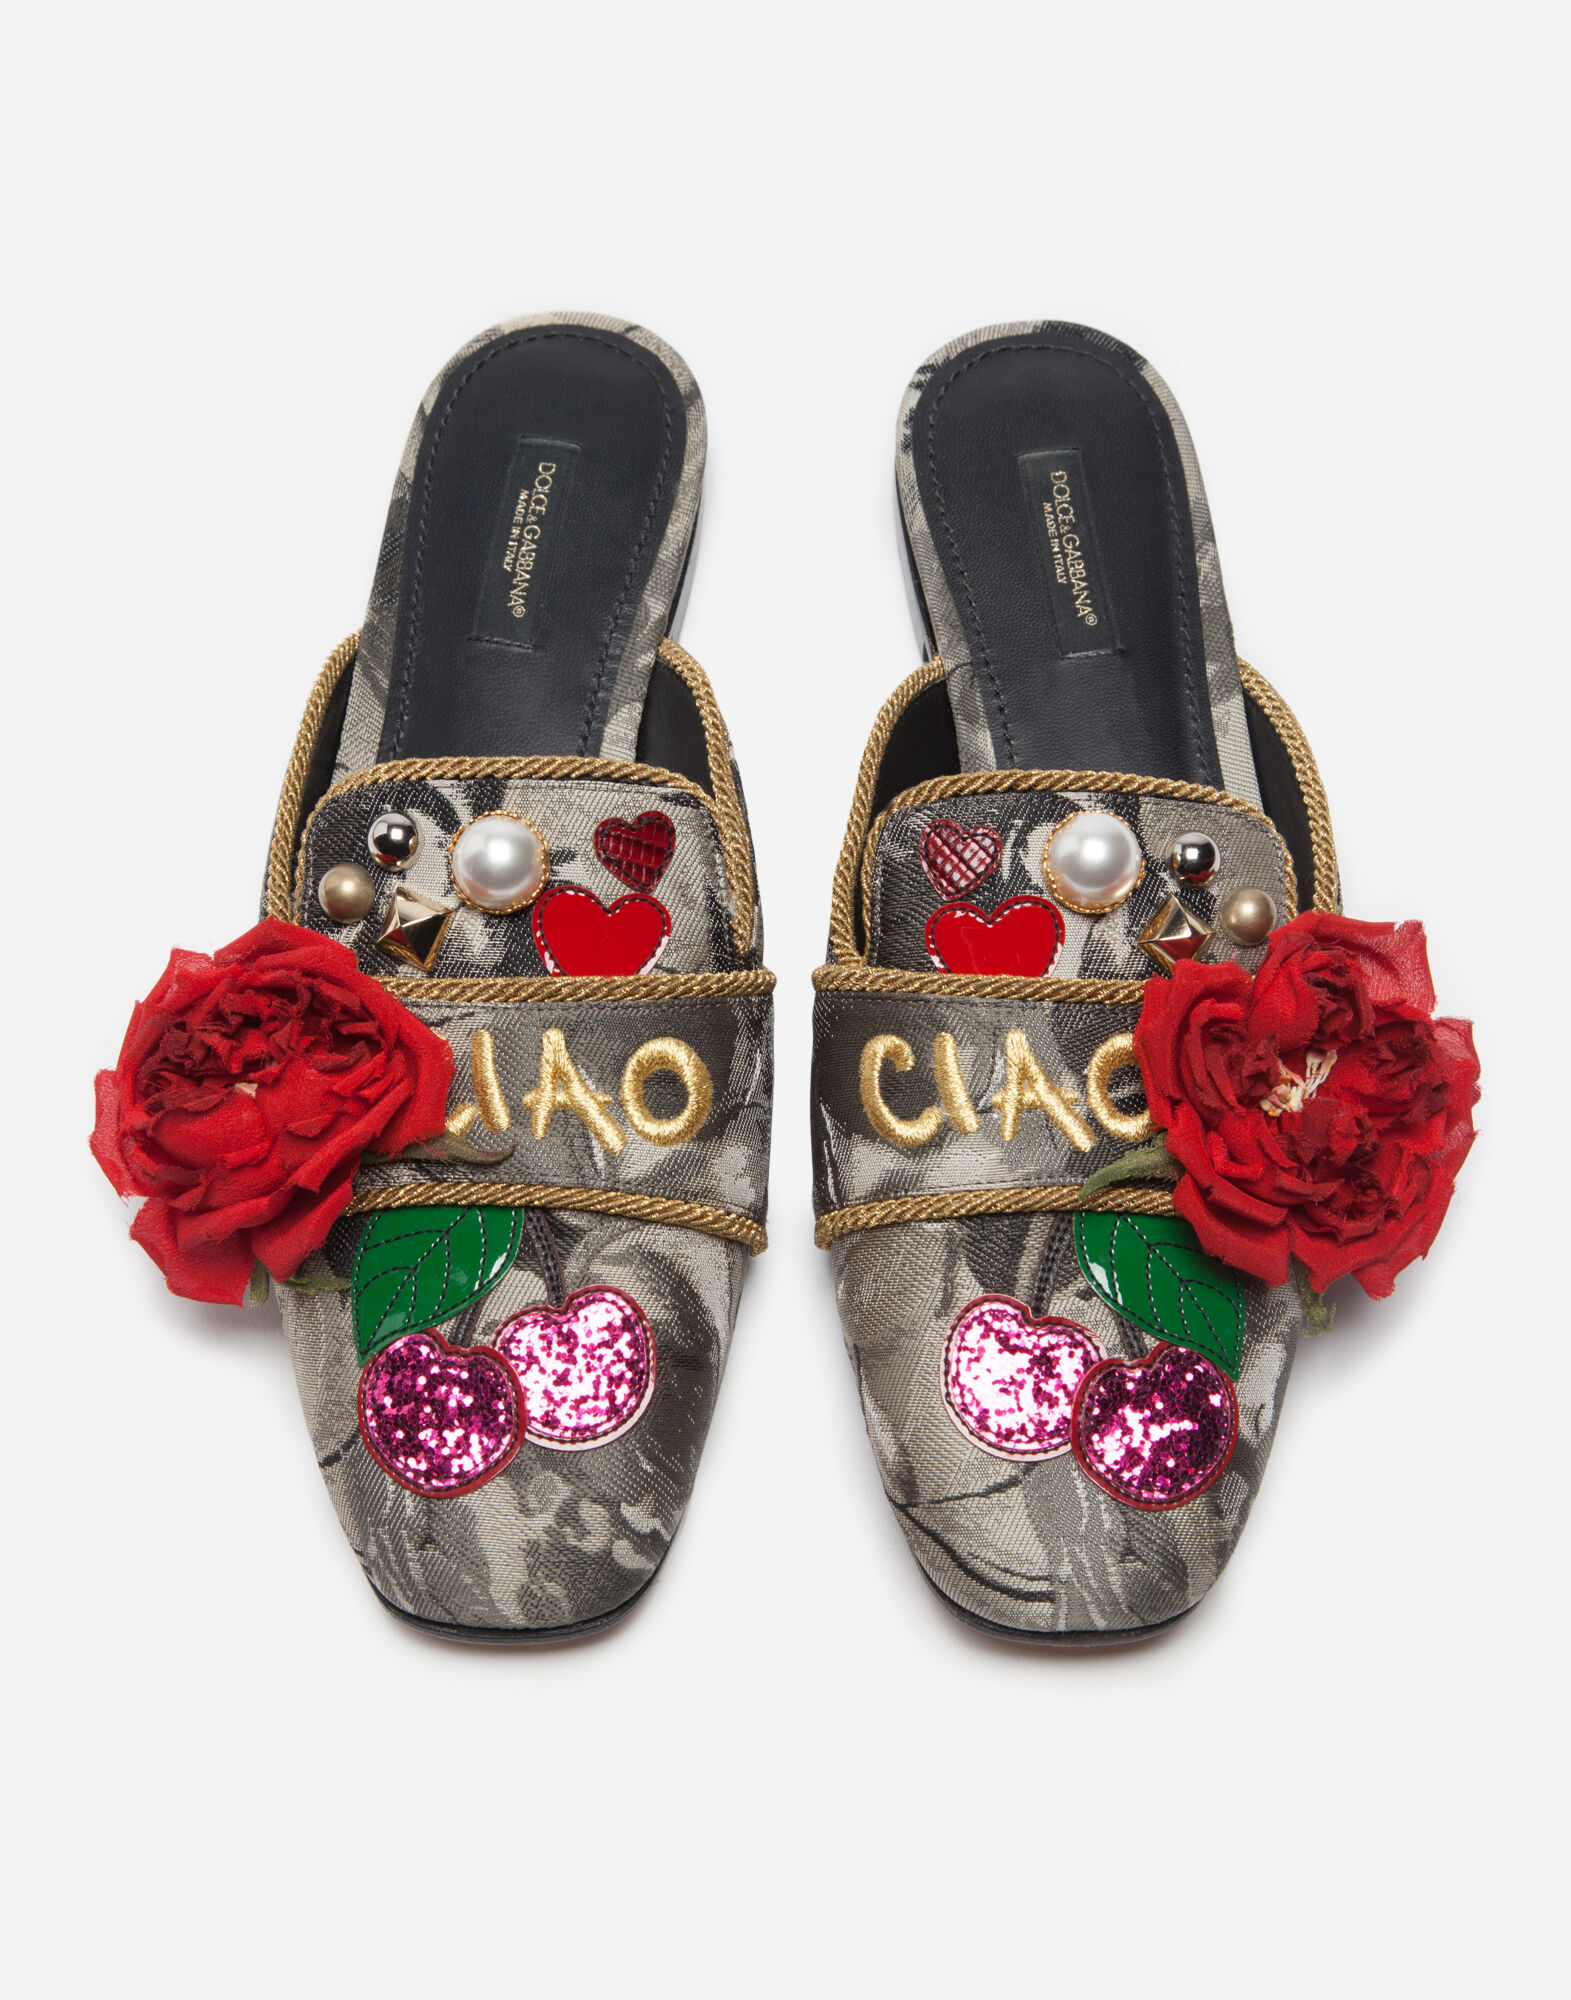 JACQUARD SLIPPERS WITH APPLIQUÉ DETAILS